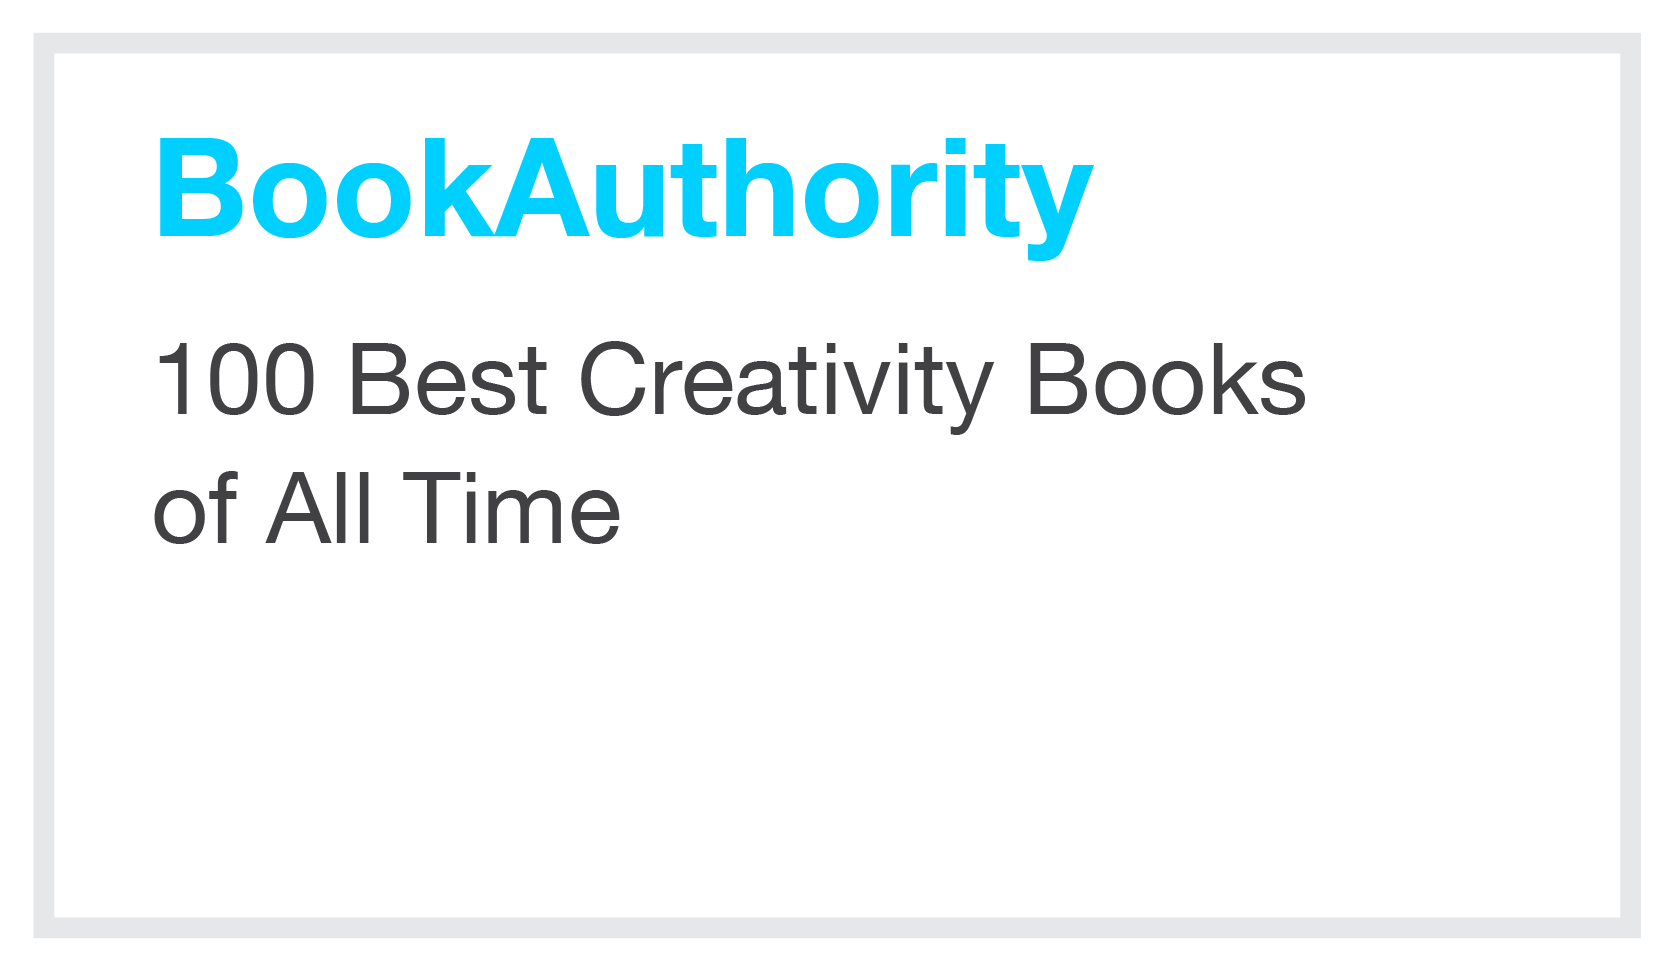 BookAuthority